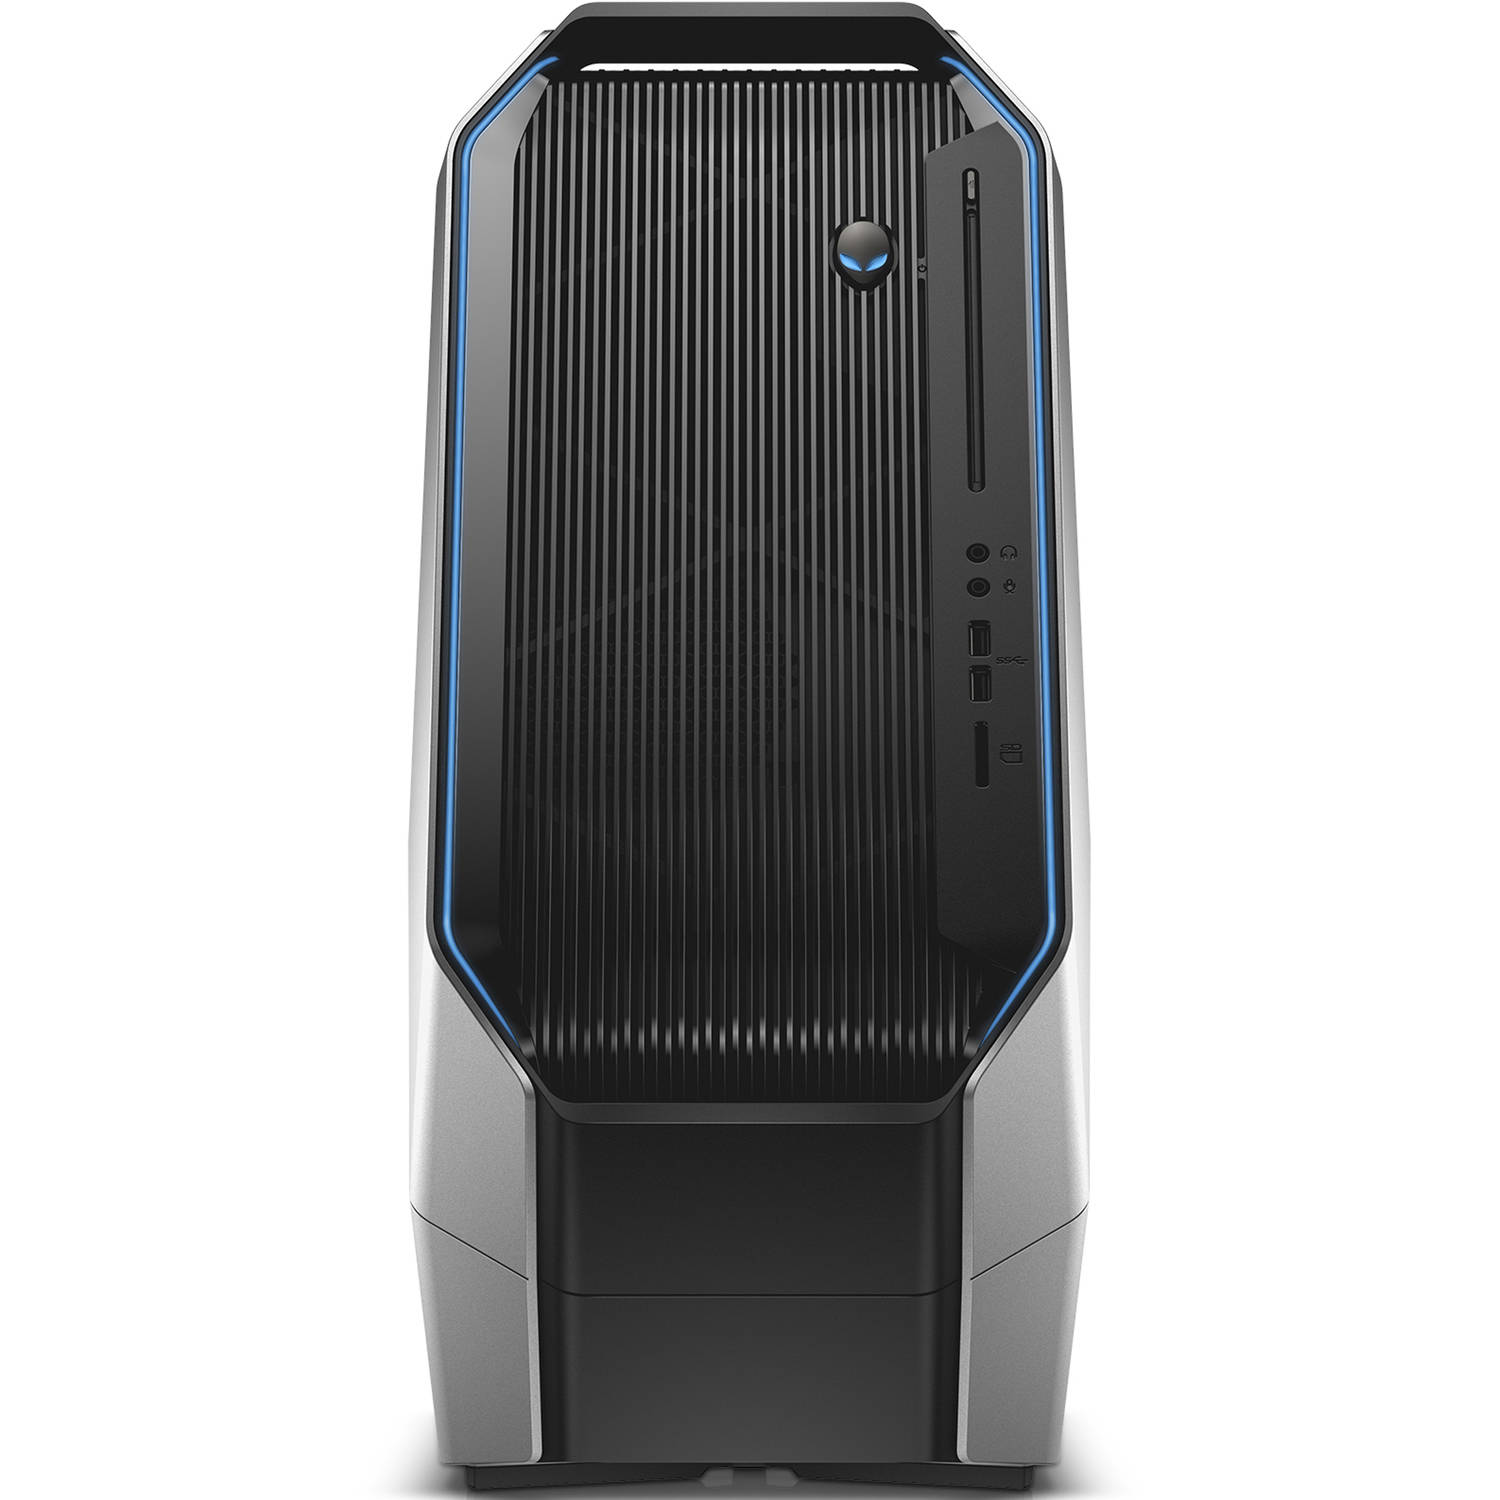 Alienware Area 51 Desktop, Intel Core i7 6800K,16GB Quad Channel DDR4 Mem,2TB 7200RPM SATA 6Gb/s ,NVIDIA GTX 1080,DVD Burner,Win10, a51R2-3237SLV